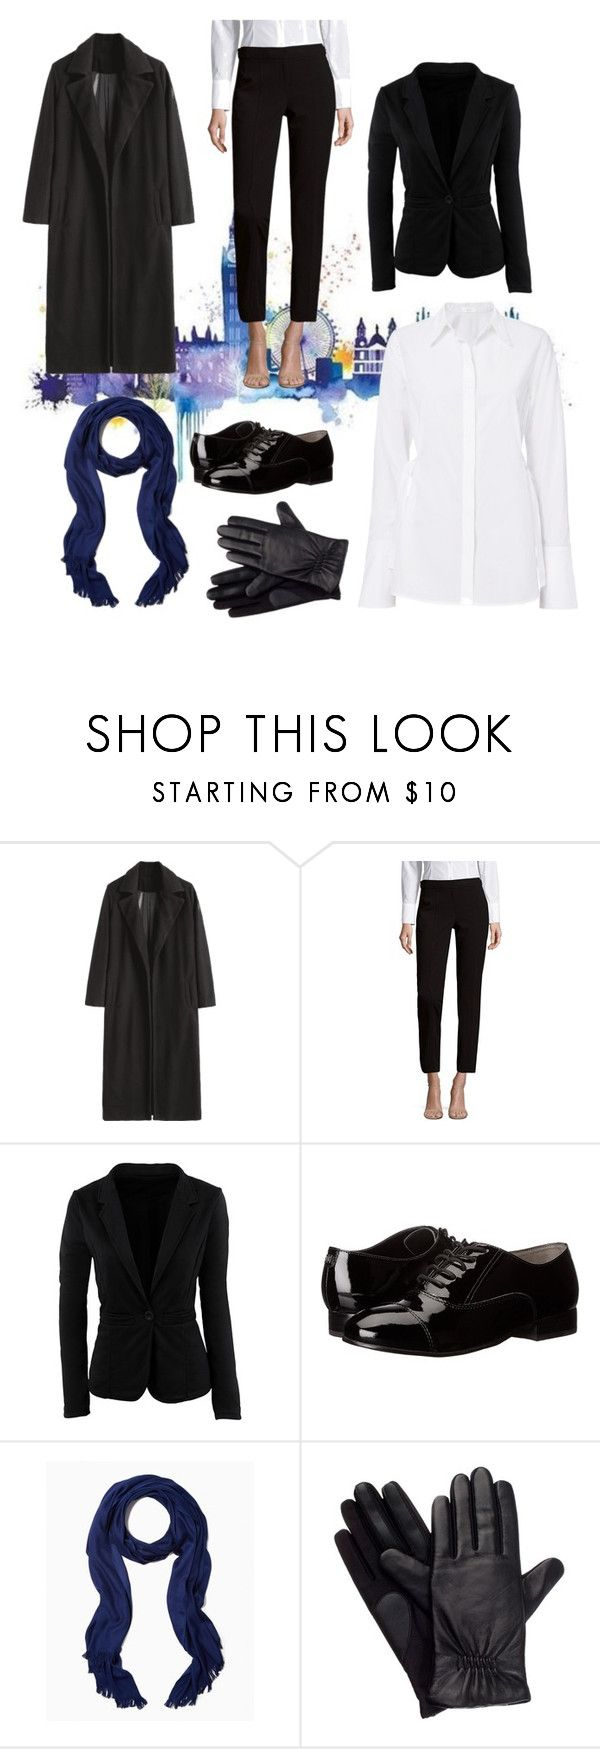 """Sherlock Holmes BBC inspired outfit"" by giulia-barsotti ❤ liked on Polyvore featuring Calvin Klein, WithChic, Ivanka Trump, Isotoner, A.L.C., men's fashion and menswear"